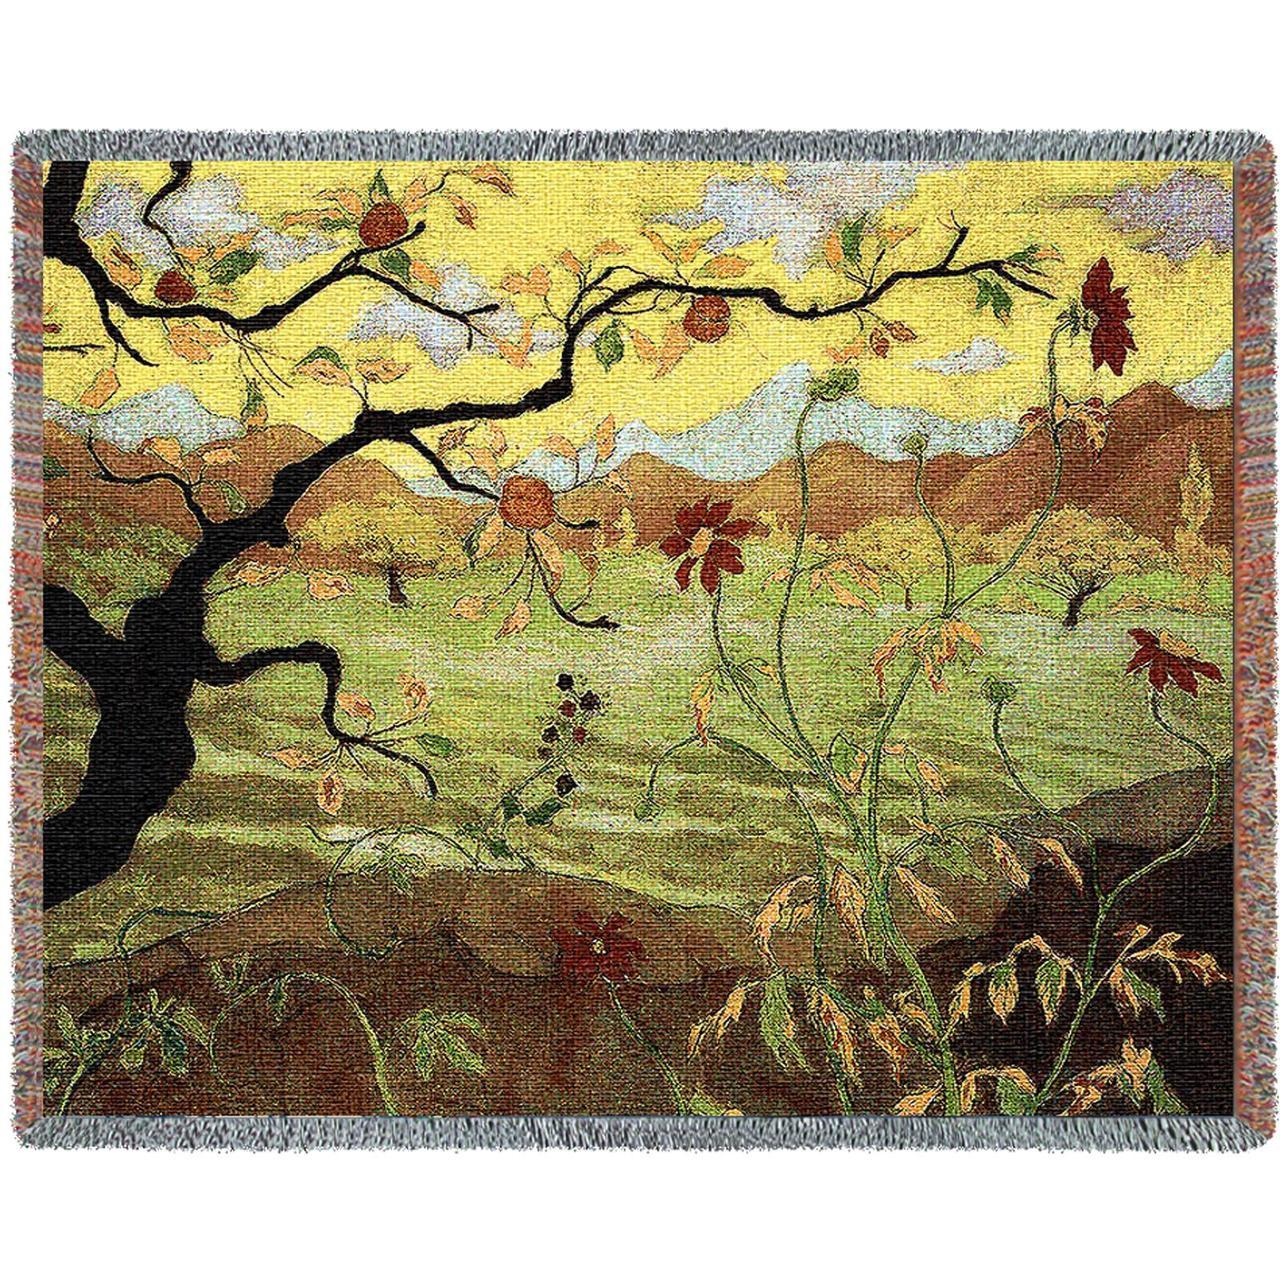 Throw Blanket-70 x53-Nature-Cozy Home-Apple Tree With Red Fruit